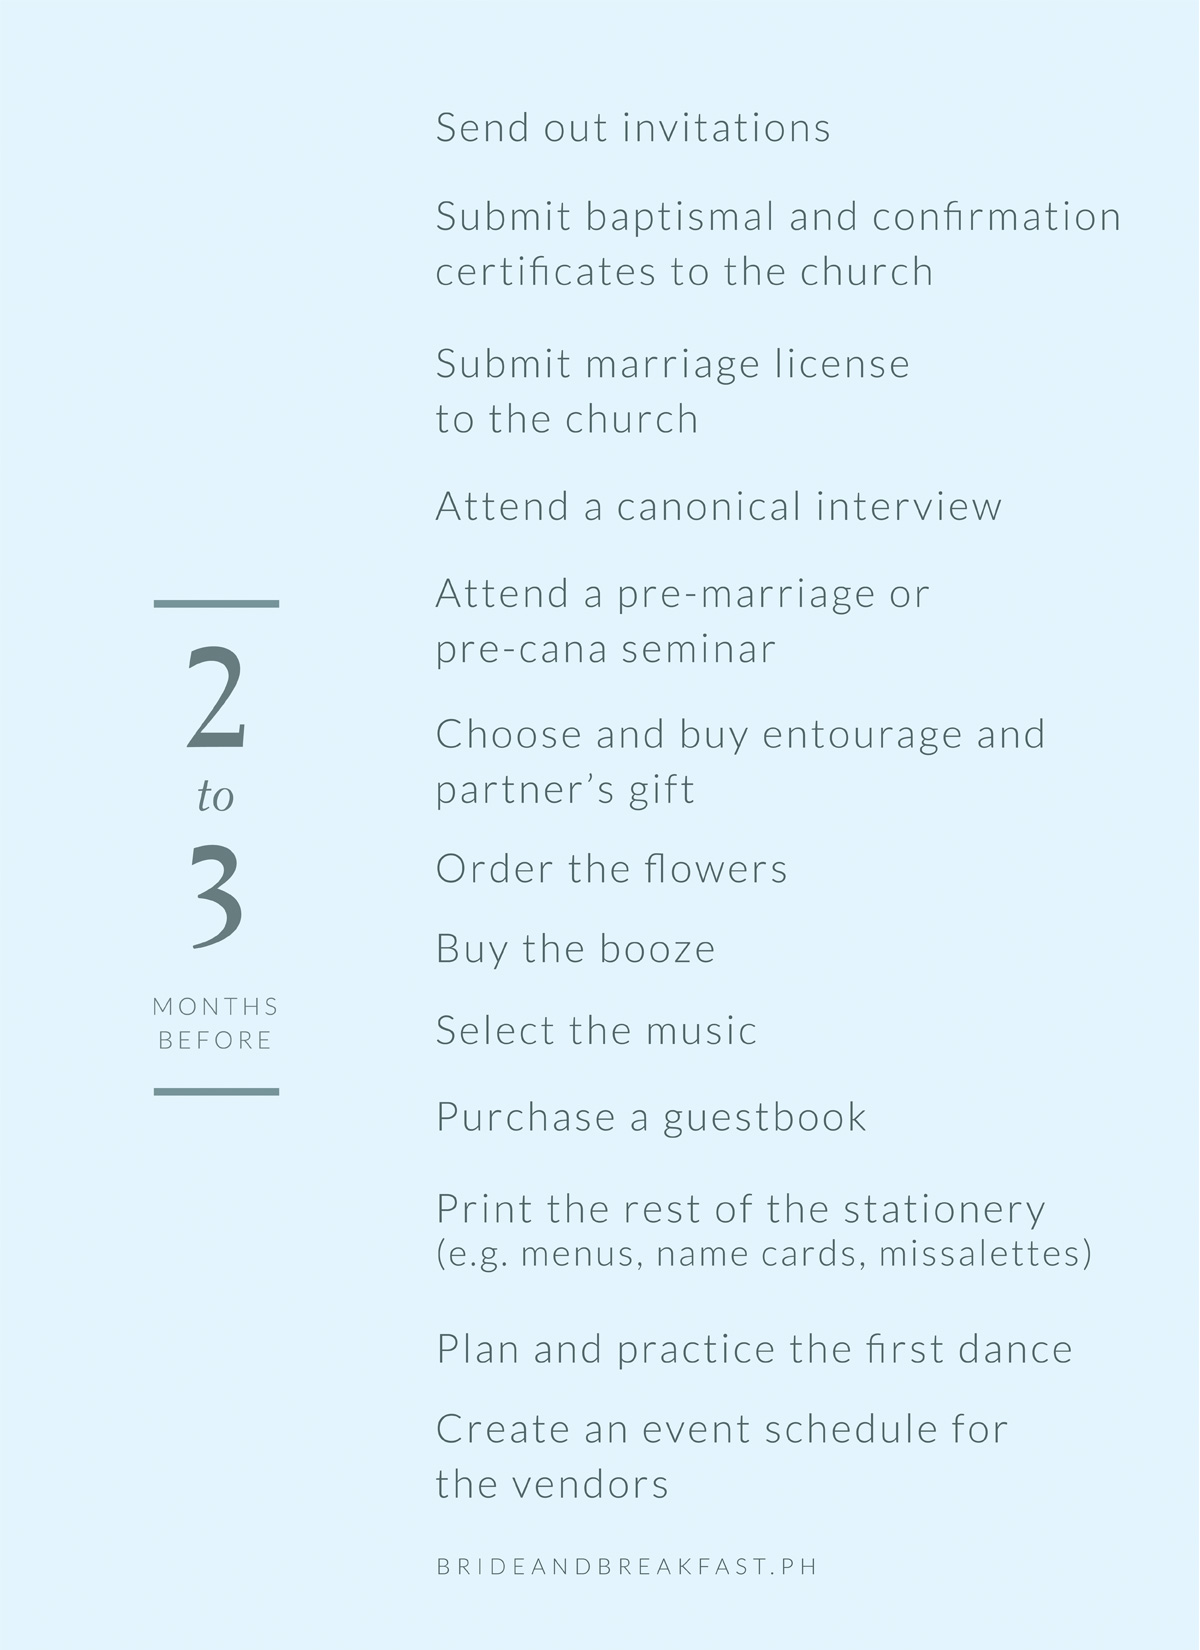 2-3 months before Send out invitations Submit baptismal and confirmation certificates to the church Submit marriage license to the church Attend a canonical interview Attend a pre-marriage or pre-cana seminar Choose and buy entourage gifts Choose and buy partner's gift Order the flowers Buy the booze Select the music Purchase a guestbook Print the rest of the stationery (e.g. menus, name cards, missalettes, etc.) Plan and practice the first dance Create an event schedule for the vendors